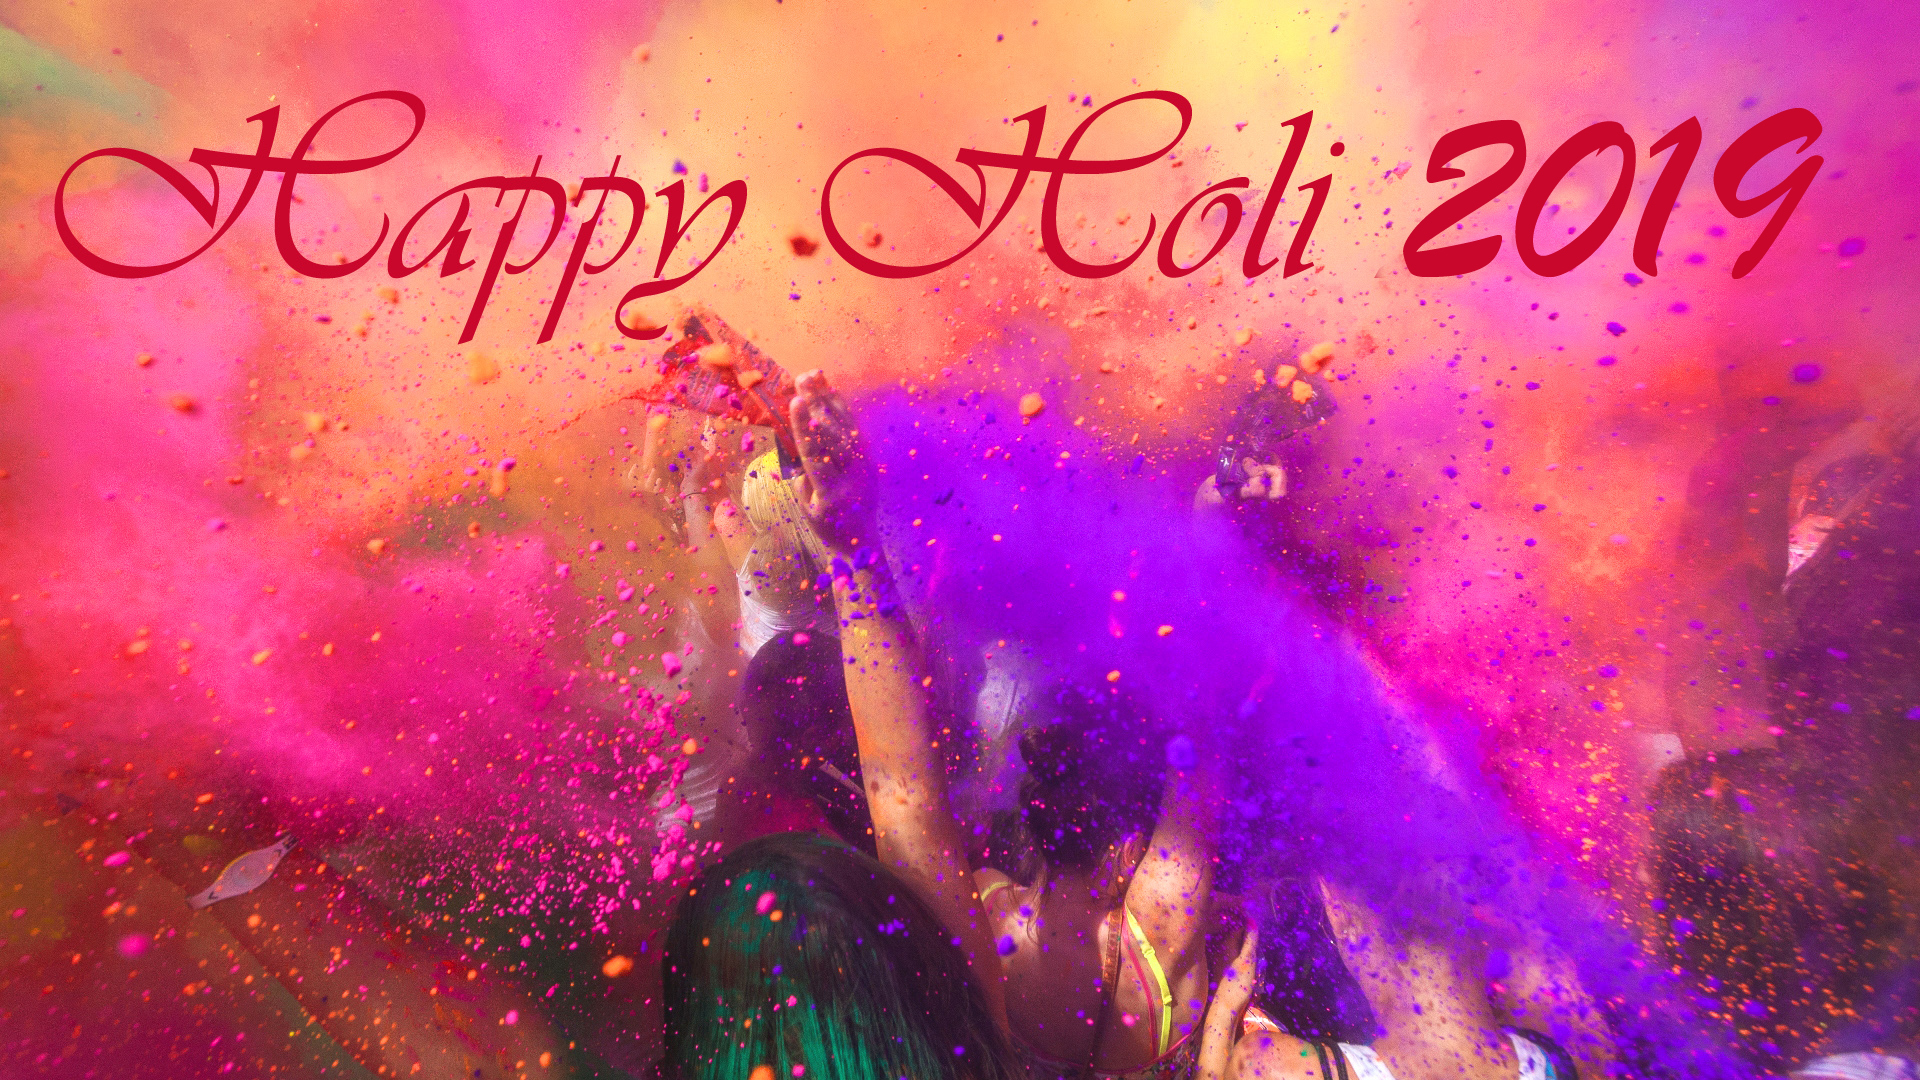 Holi India 2019 Wallpaper In Hd Resolution Hd Wallpapers